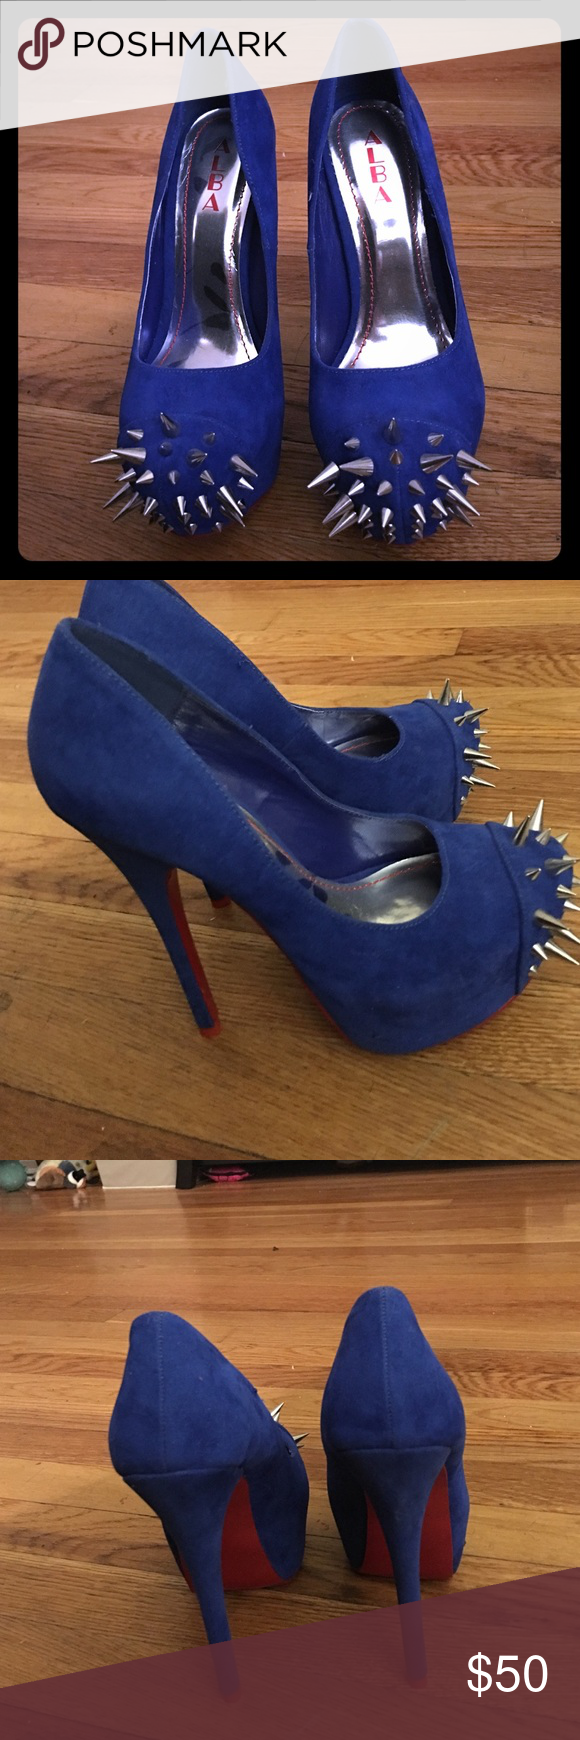 d0f07505e9a Alba Spike Stilettos- Royal Blue Suede- Red Bottom Brand New without ...